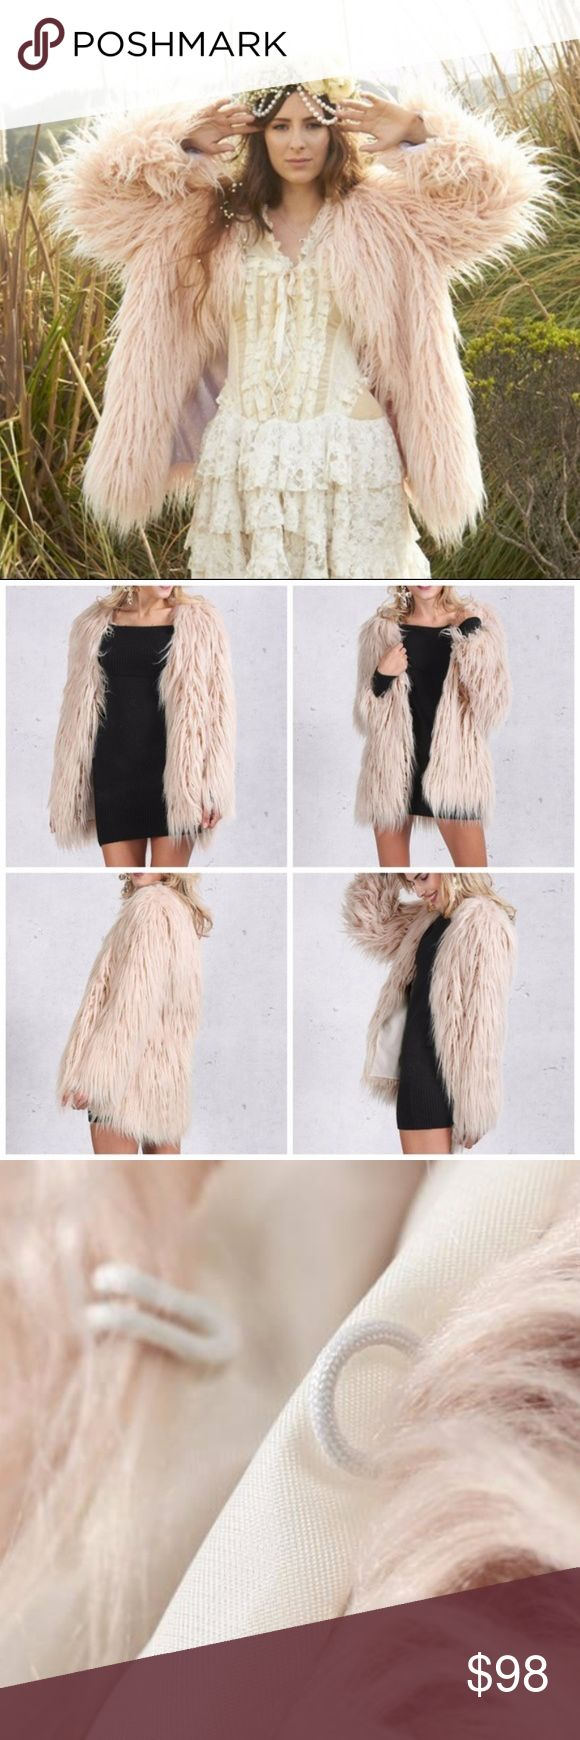 Blush Cream Faux Fur Coat Shaggy Jacket Blush Ivory VNeck Regular fit, lightweight 100% HIGH QUALITY Artificial Faux Fur Fiber Hook Closure  Takes 3-4 days for shipment, goes through a deshedding , brushout and detailed packaging process :) Boutique Items are NWOT direct from makers  TRUE TO SIZE!  If you want a nice oversized fit, order one size up Jackets & Coats